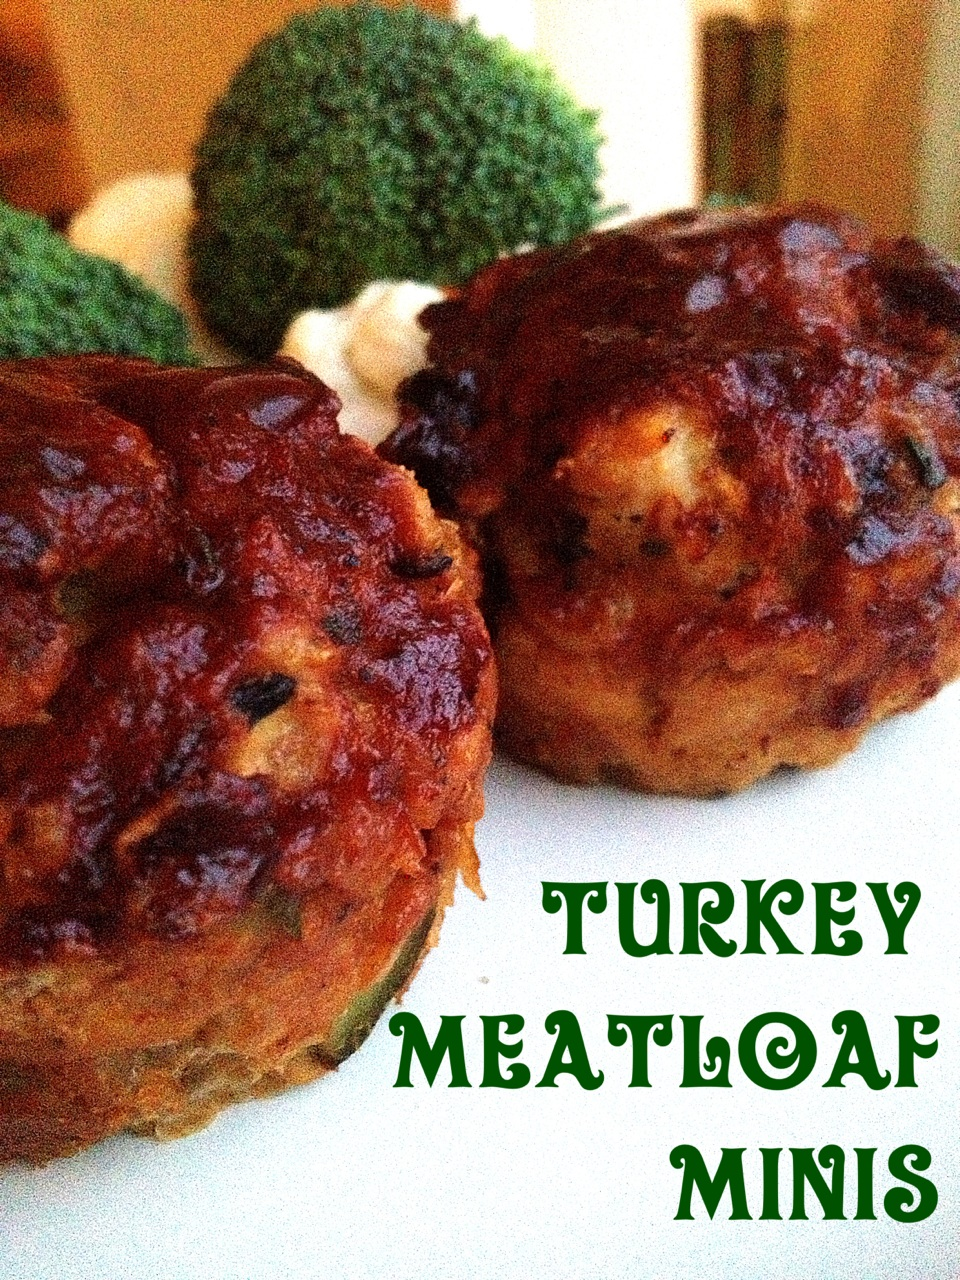 Turkey Meatloaf Minis